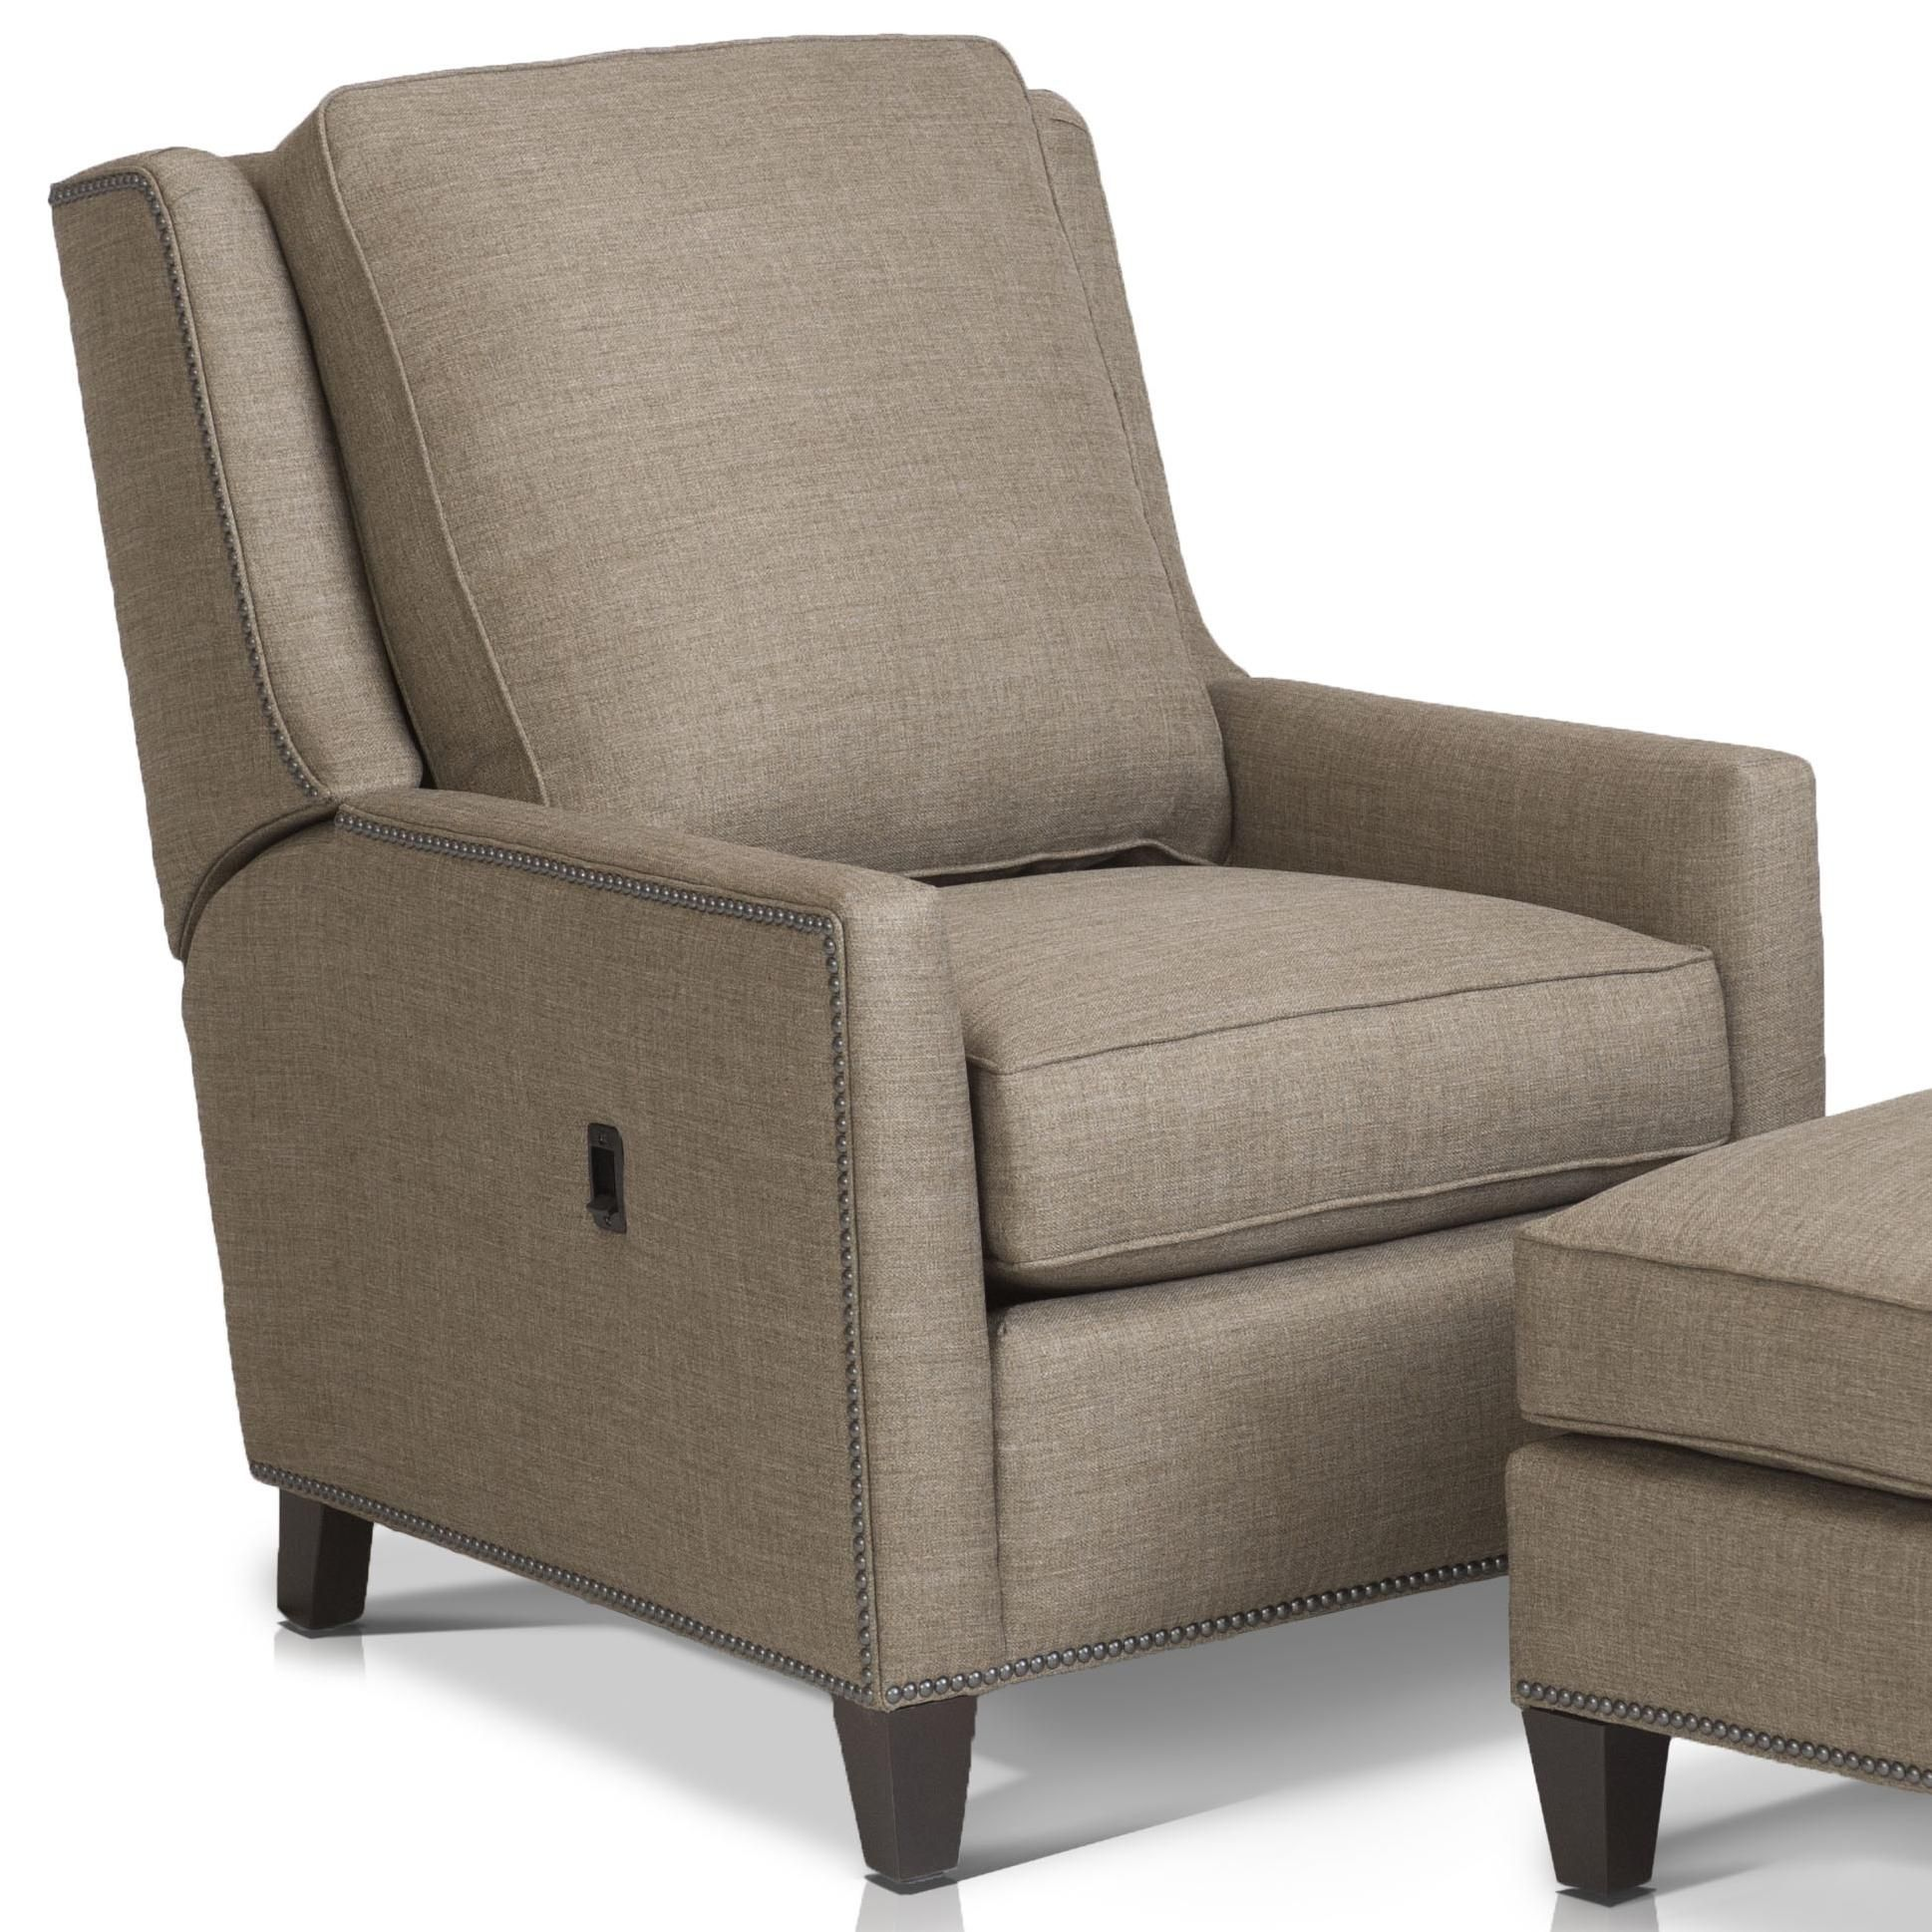 Tilt Back Chair Recliners Tilt Back Chair By Smith Brothers Furniture Recliner